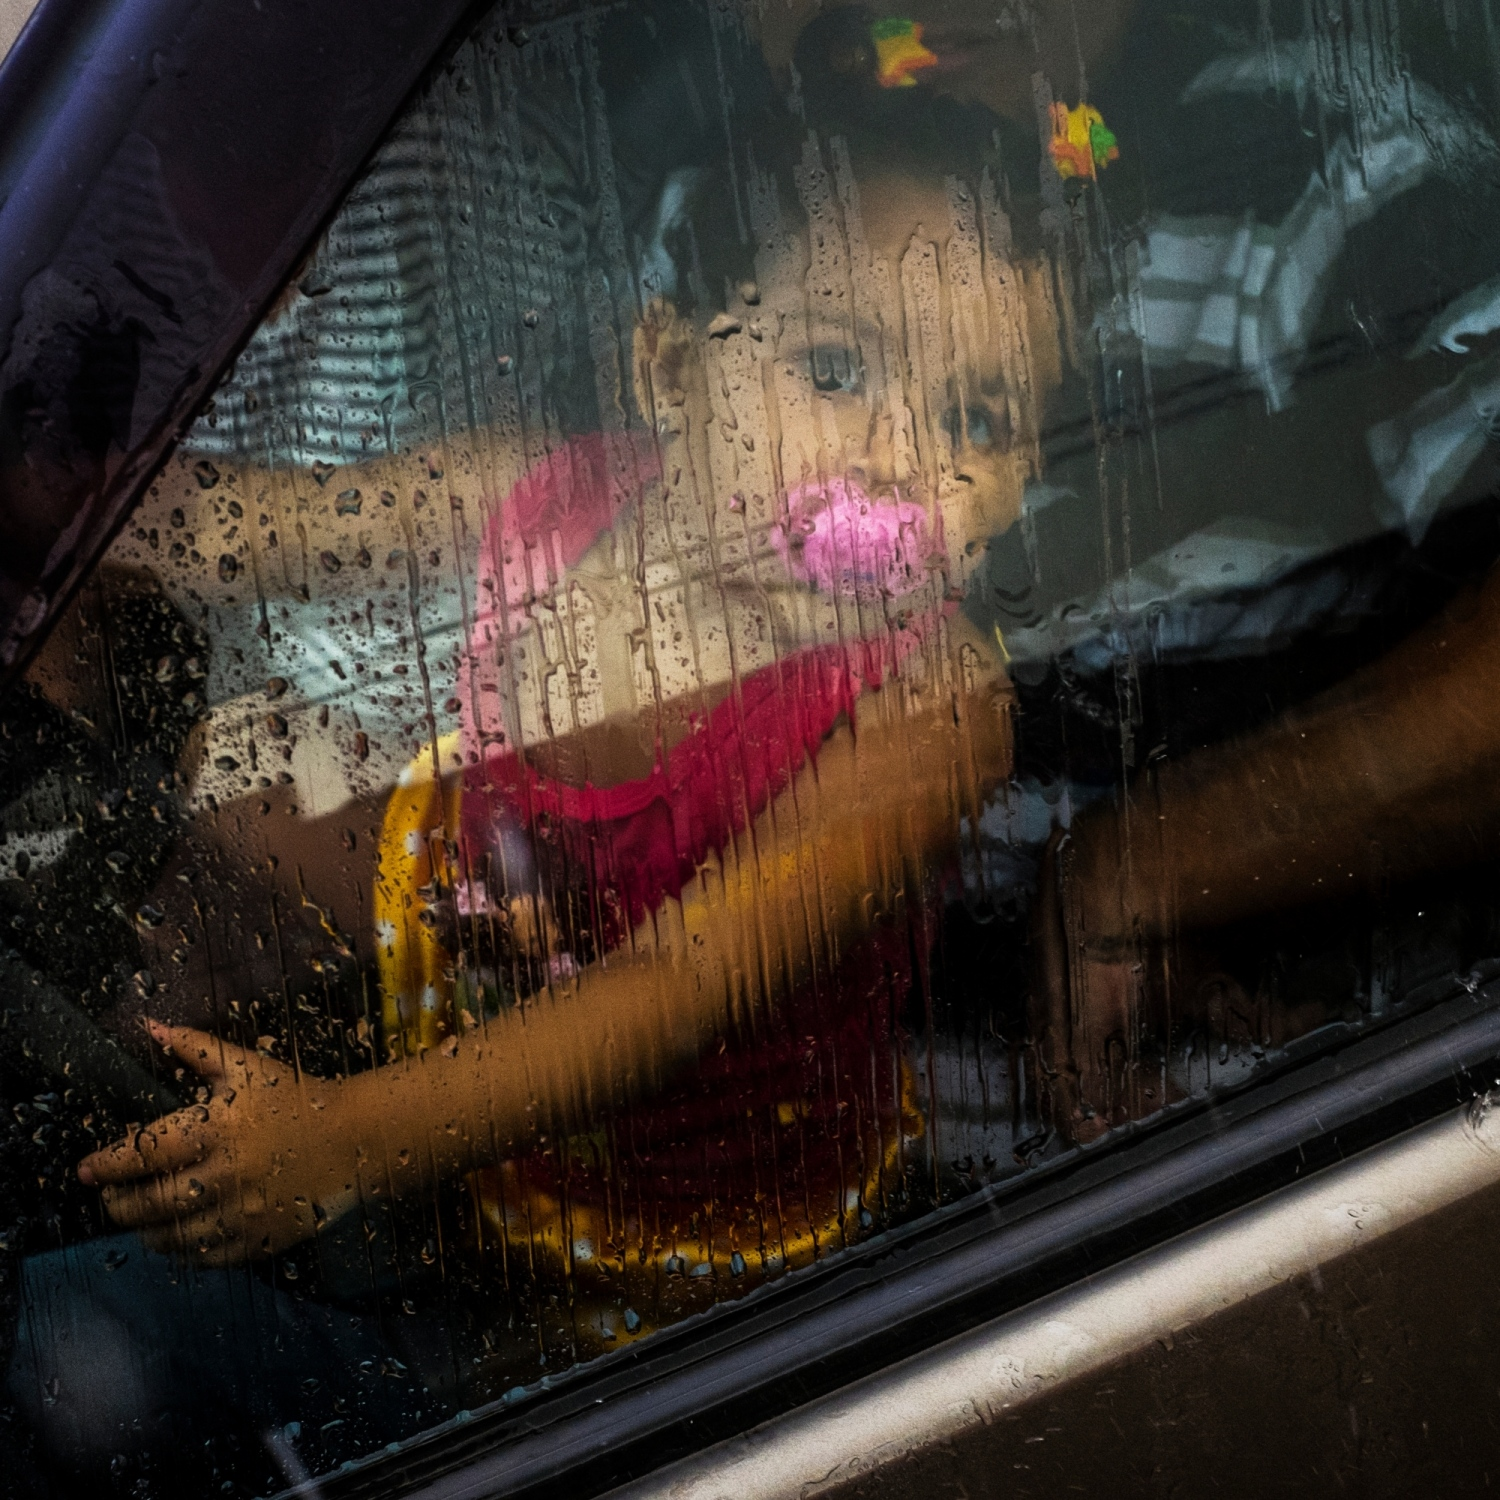 2014. A child watches a Carnival parade from the drivers seat on rainy day in the City of Altamira, Para, Brazil.  /Aaron Vincent Elkaim